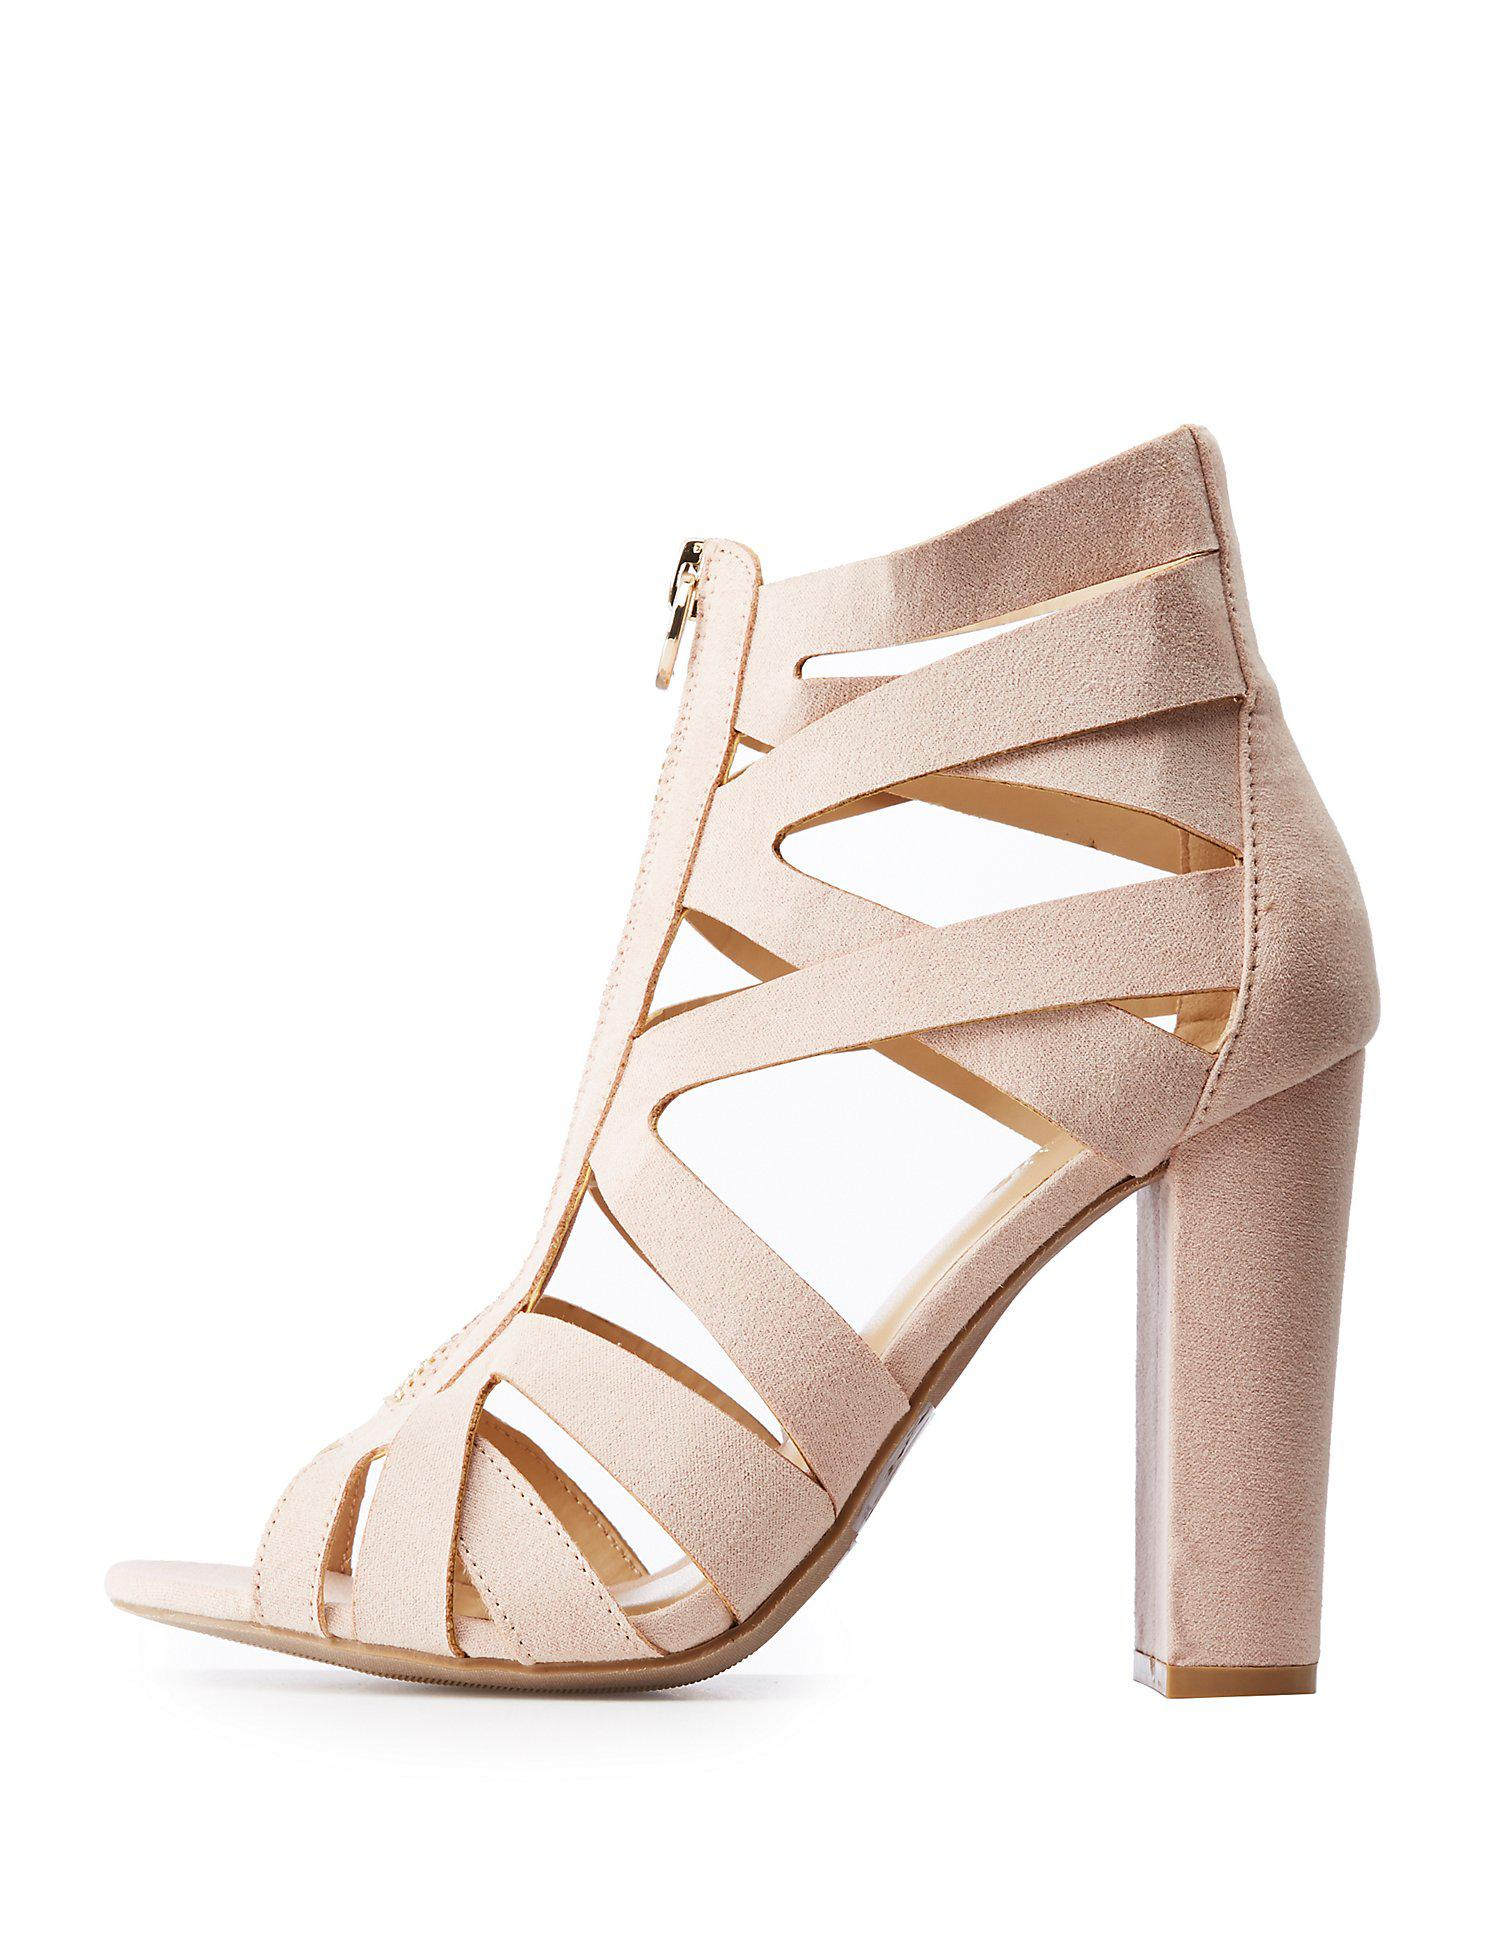 802b3fd237ac Lyst - Charlotte Russe Caged Zip Up Sandals in Natural - Save 47%